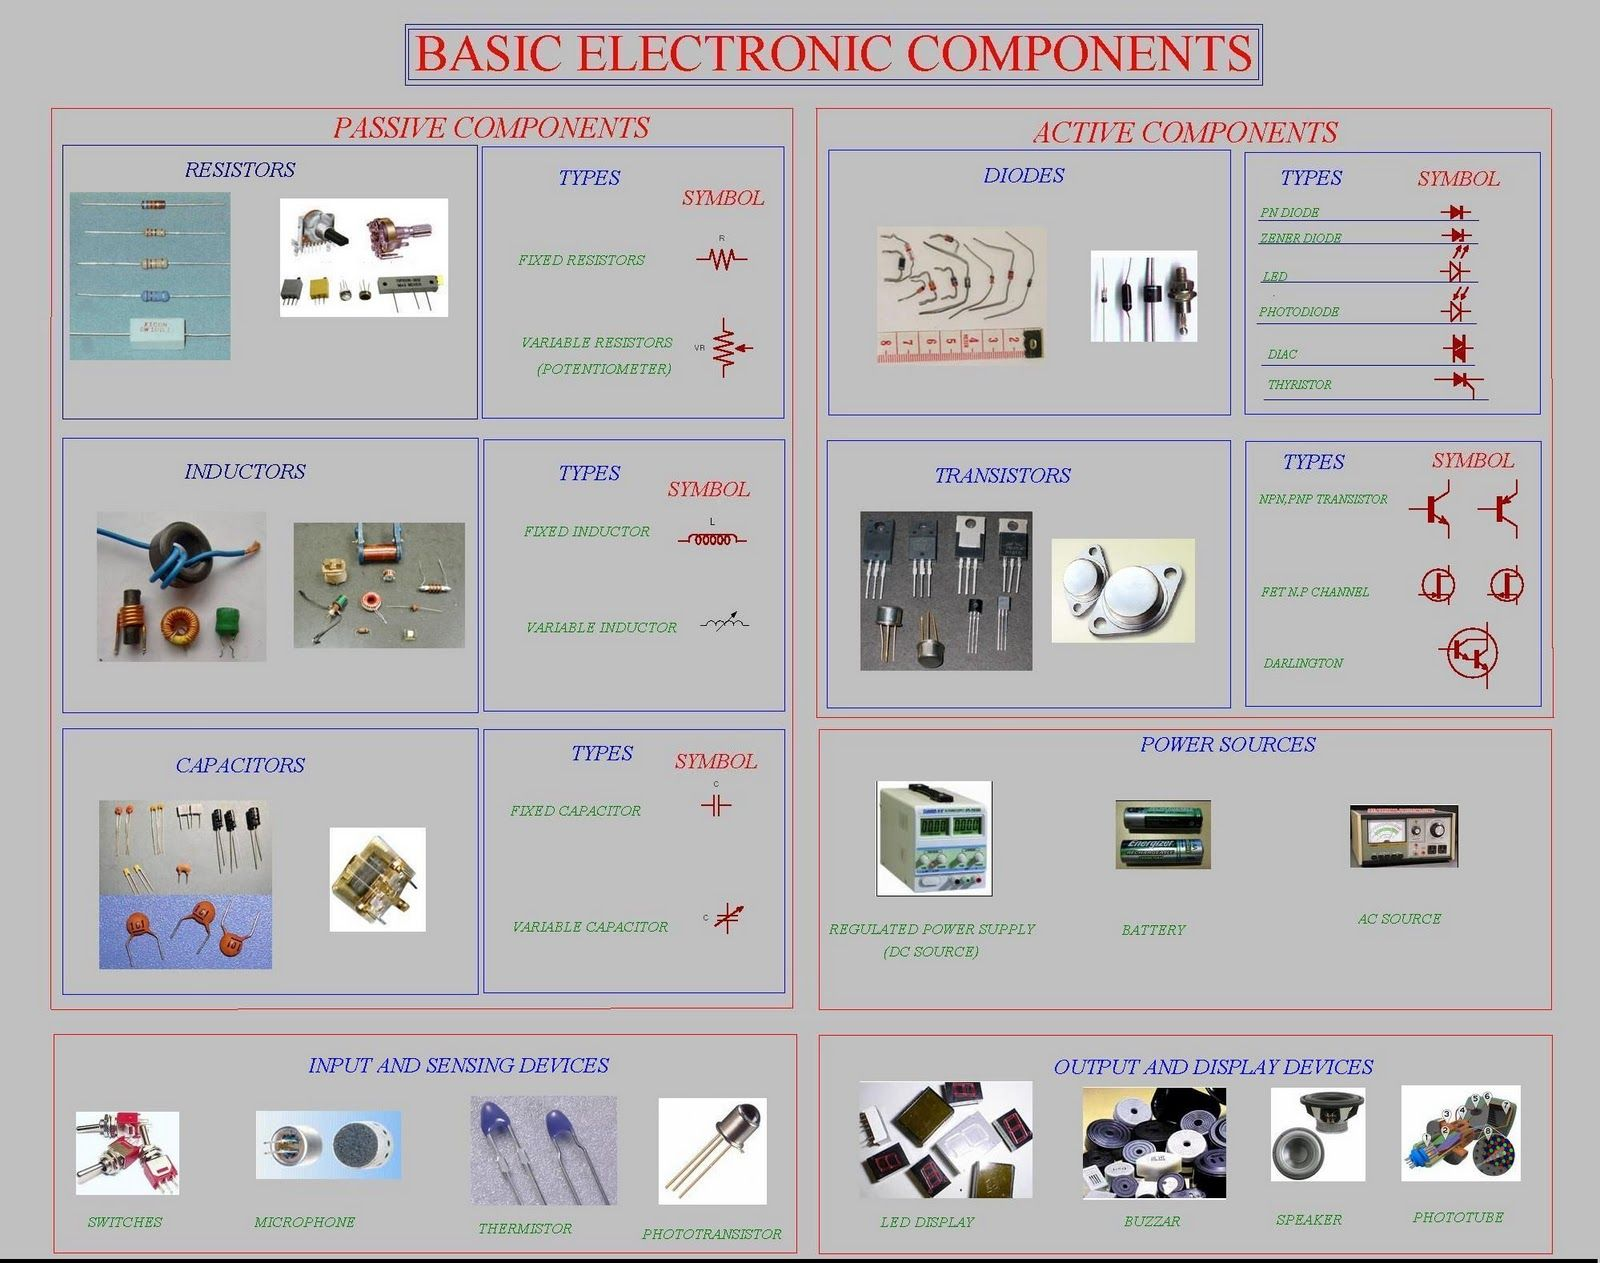 Electronics Components Chart Knowledge In 2018 Pinterest Sensor Circuits Archives Page 2 Of Gadgetronicx Projects The Inventors Arduino Electronic